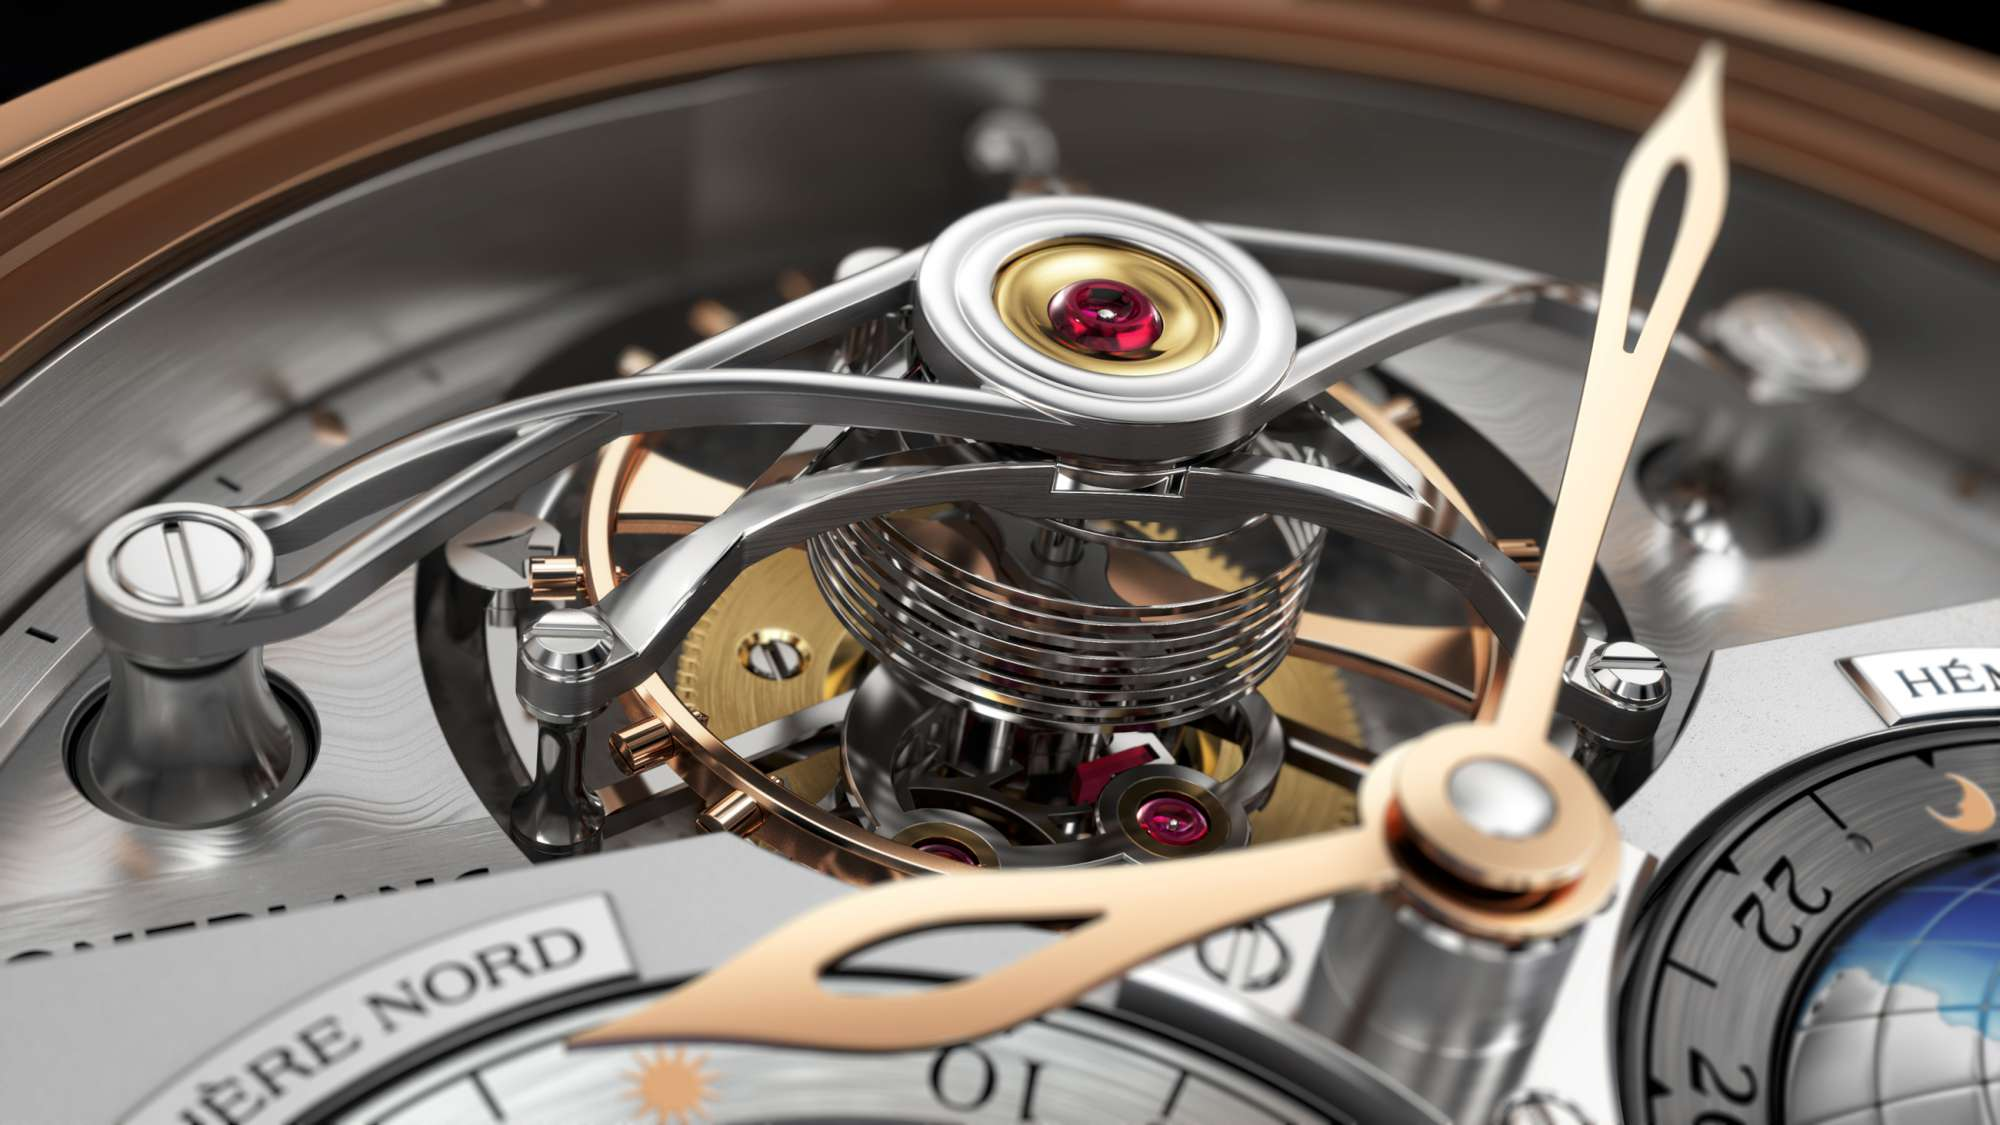 Montblanc Tourbillon Cylindrique Geosphères Vasco da Gama - Close-up Tourbillon 111675-2000